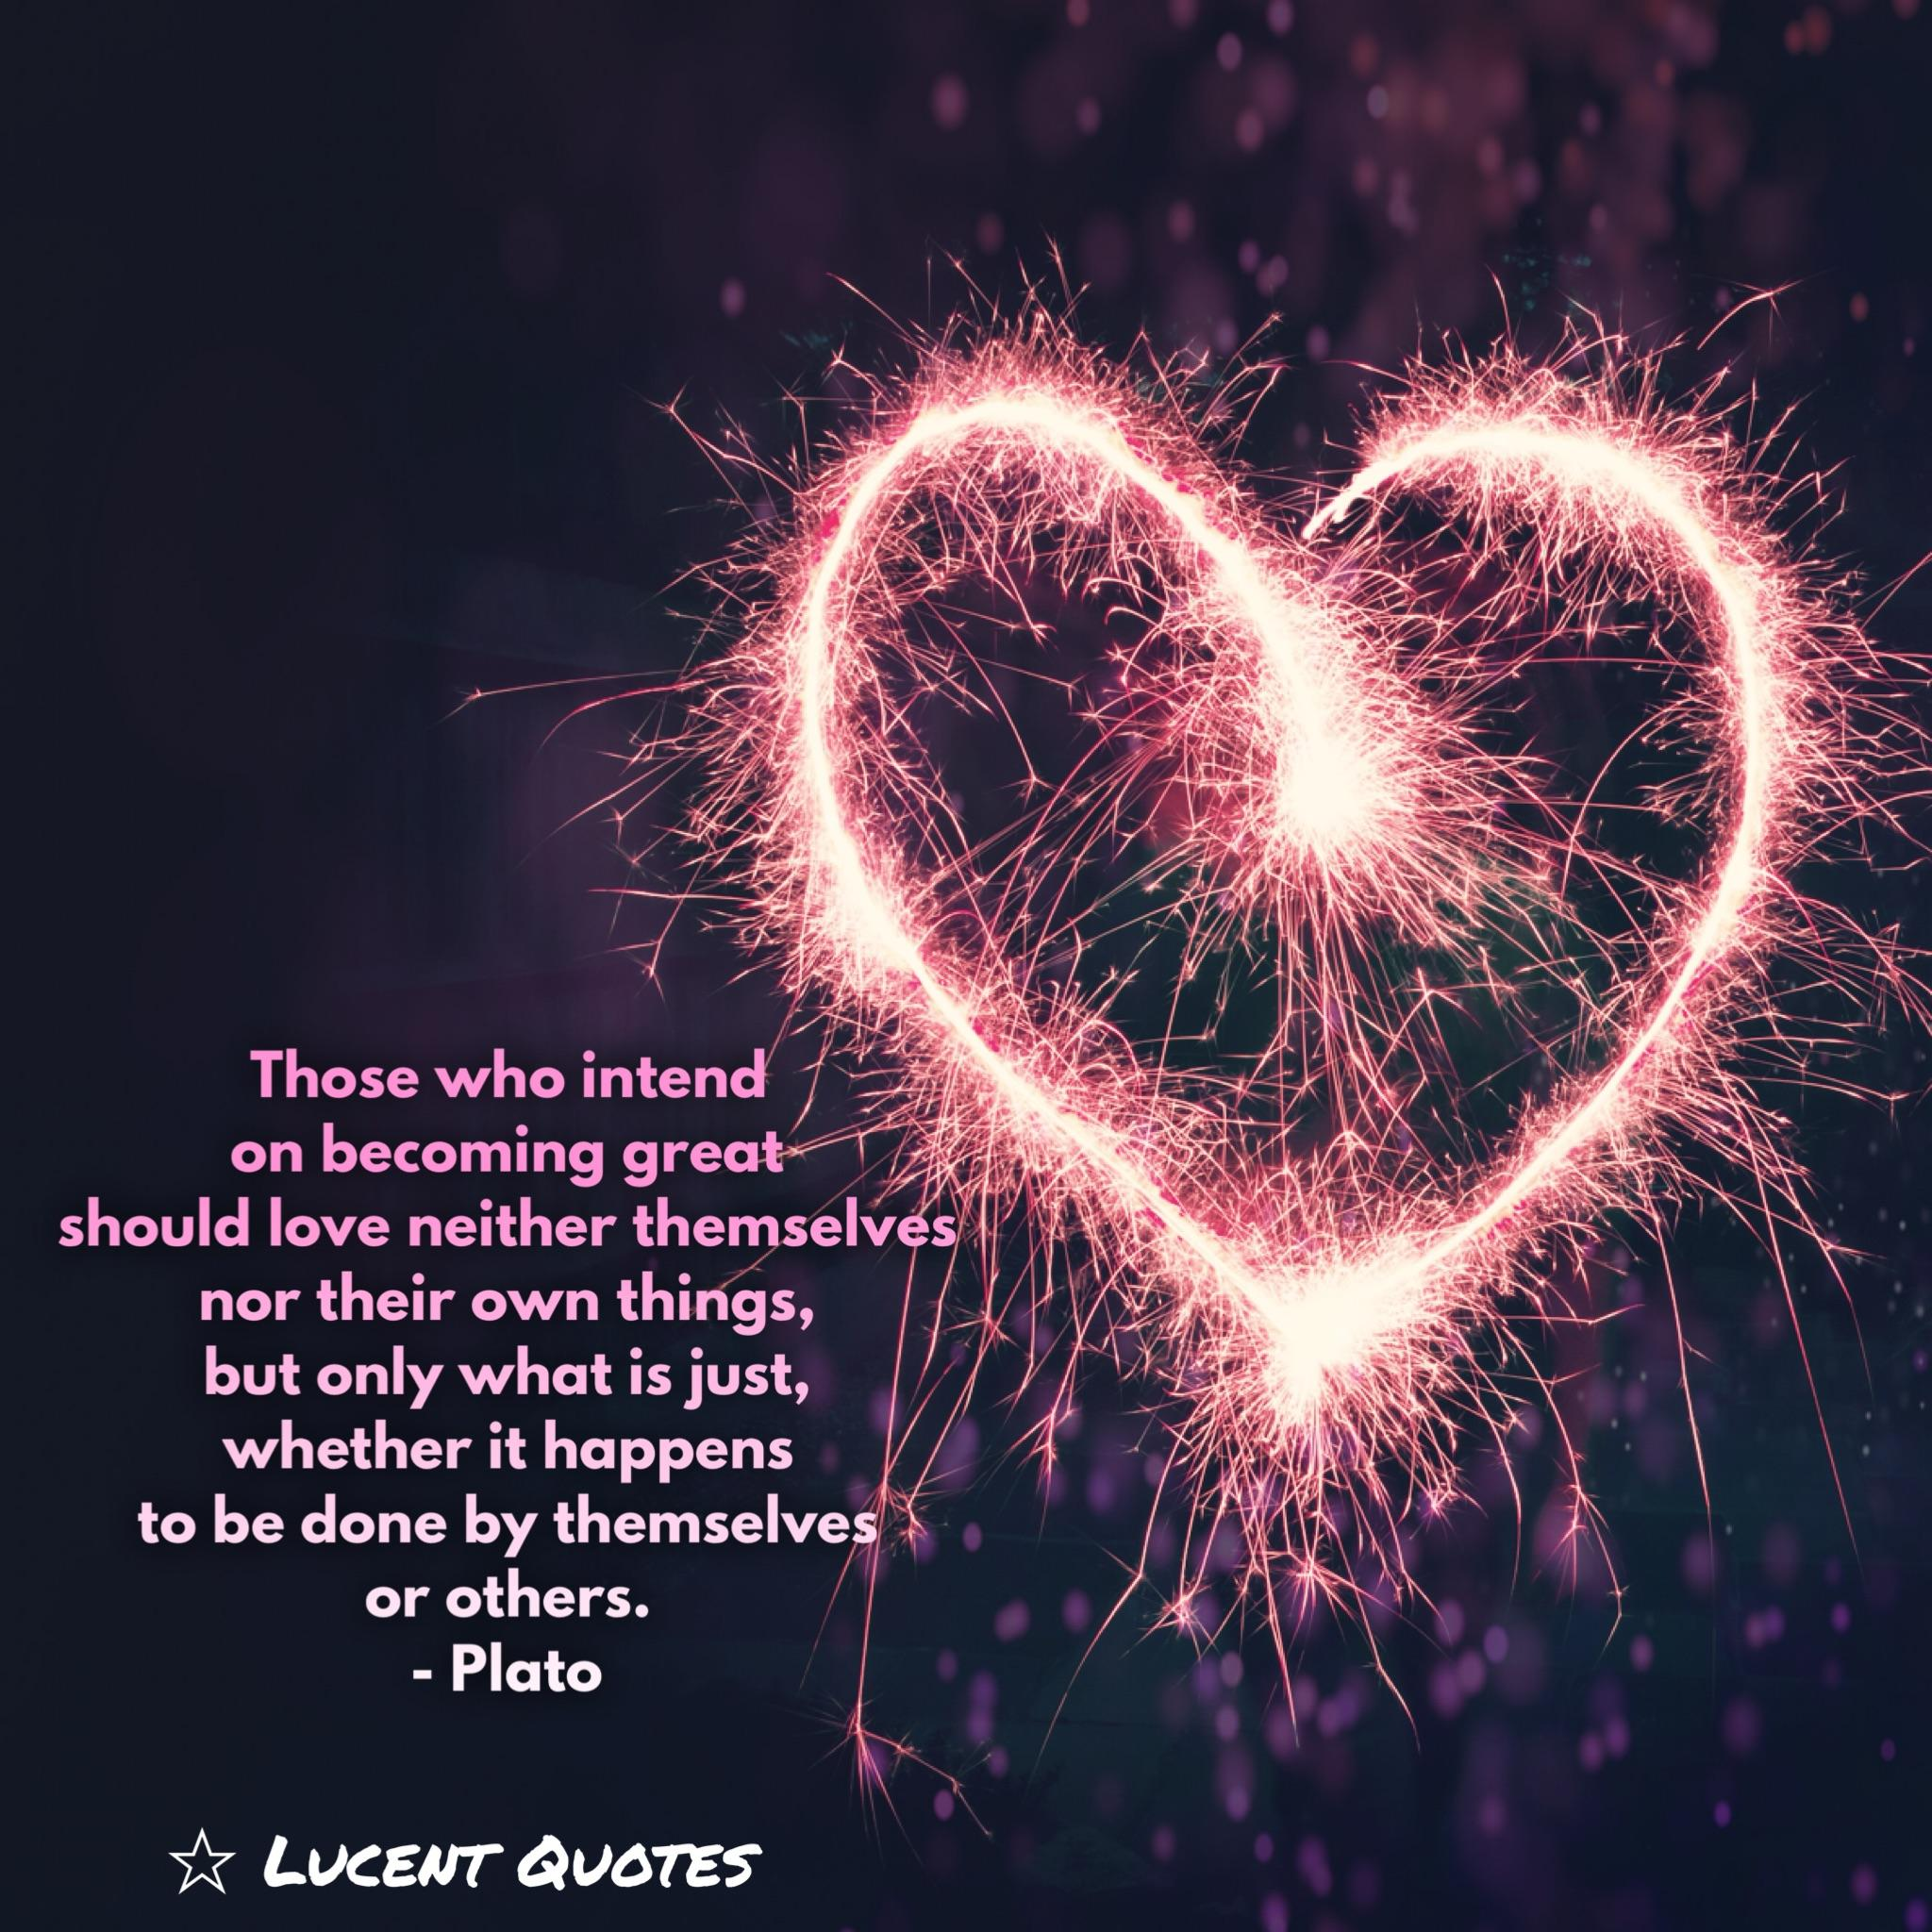 Those who intend on becoming great should love neither themselves nor their own things, but only what is just, whether it happens to be done by themselves or others. – Plato [600×600][OC ig: Lucentquotes]